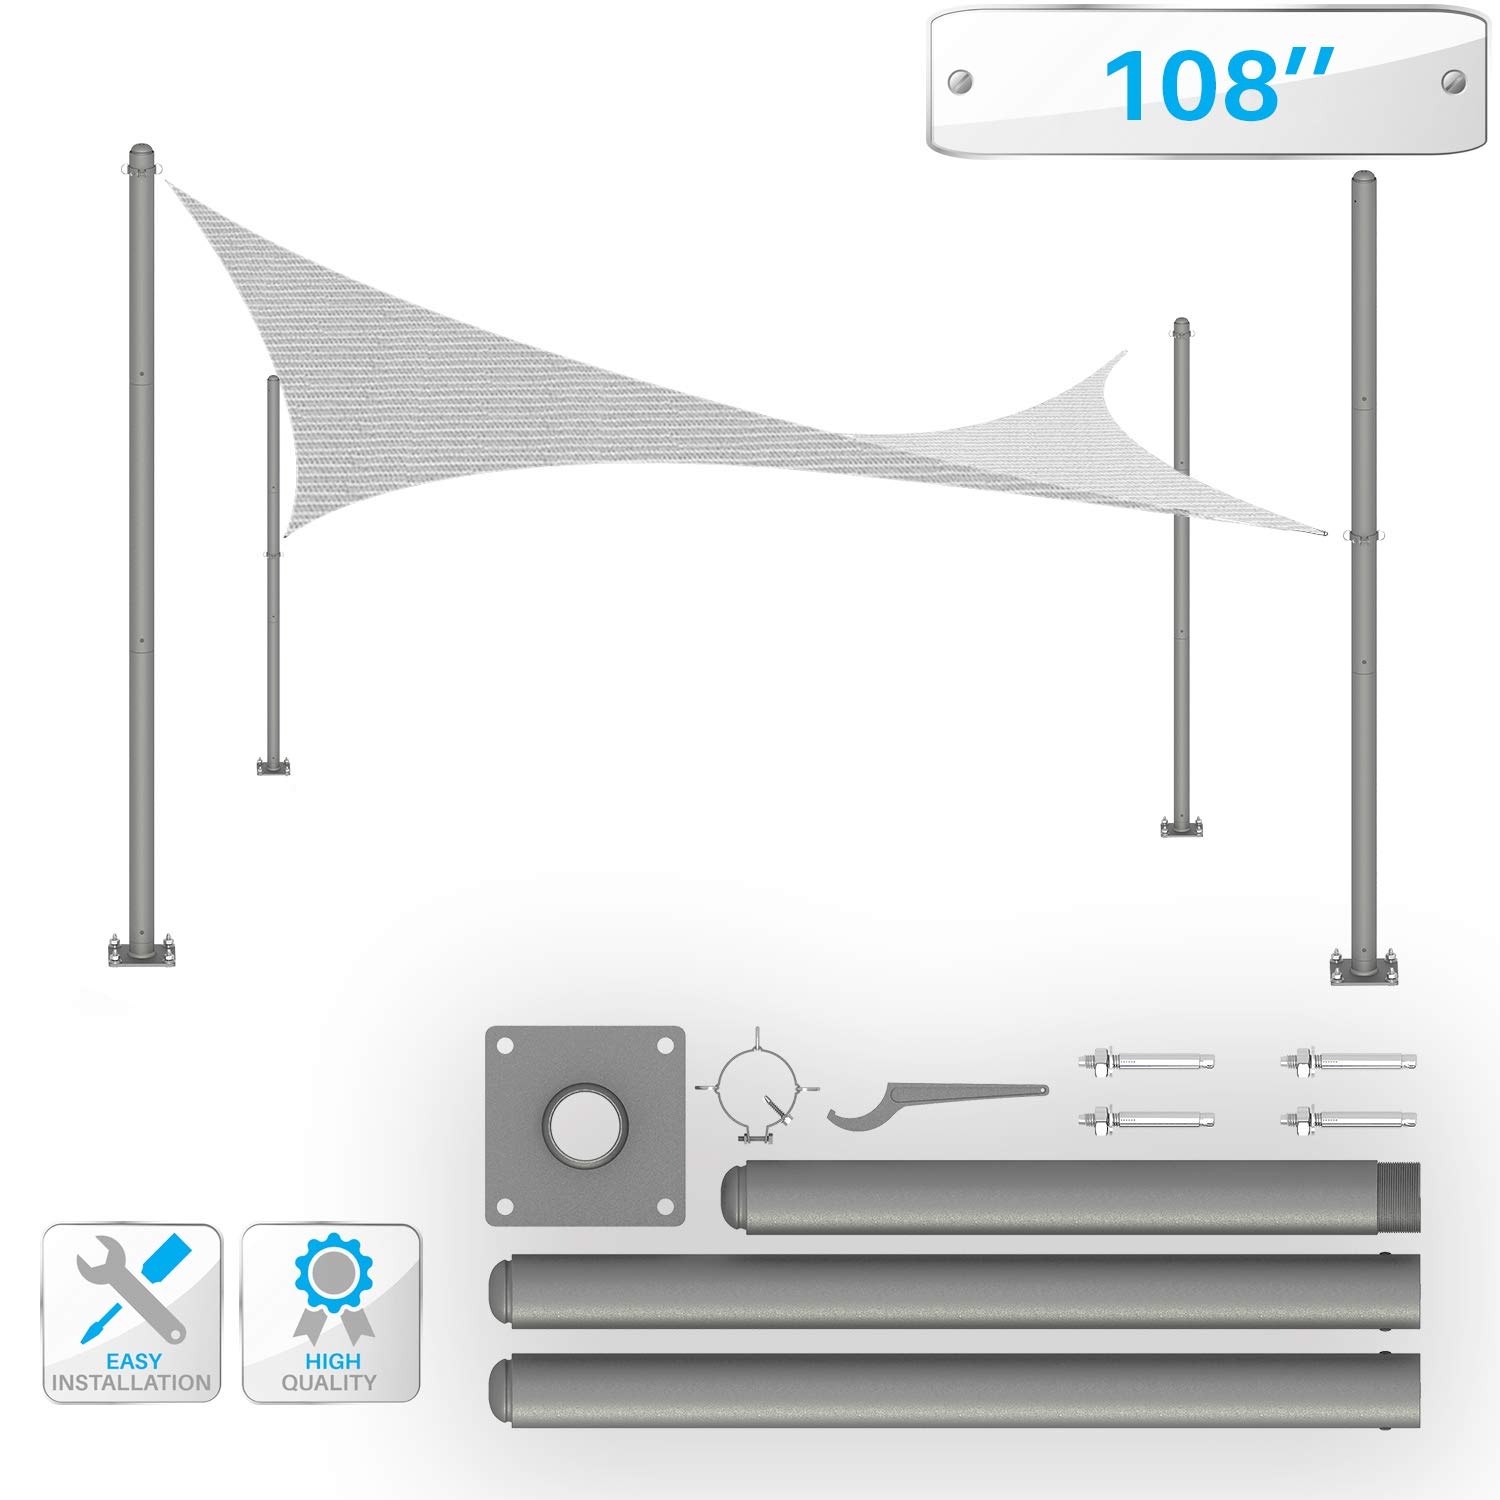 PATIO Sun Shade Sail Pole 9' Feet Tall (108'') Stand Post -Heavy-Duty Awning, Knitted Shade Sail Stand Post - Canopy Support Poles,Strengthen Durable Versatile Replacement Poles, Steel/Gray